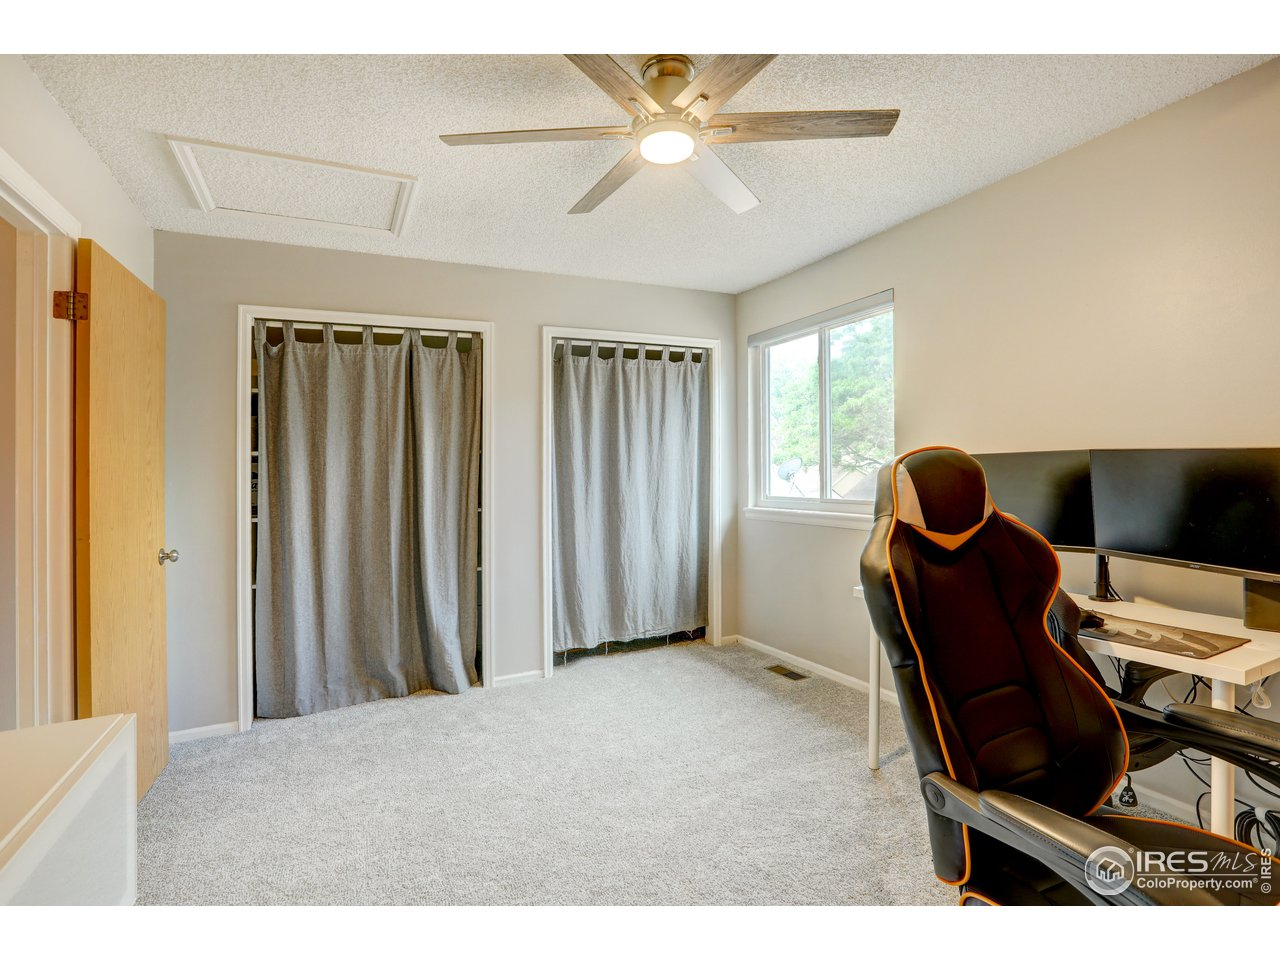 2nd bedroom has ceiling fan and new carpet